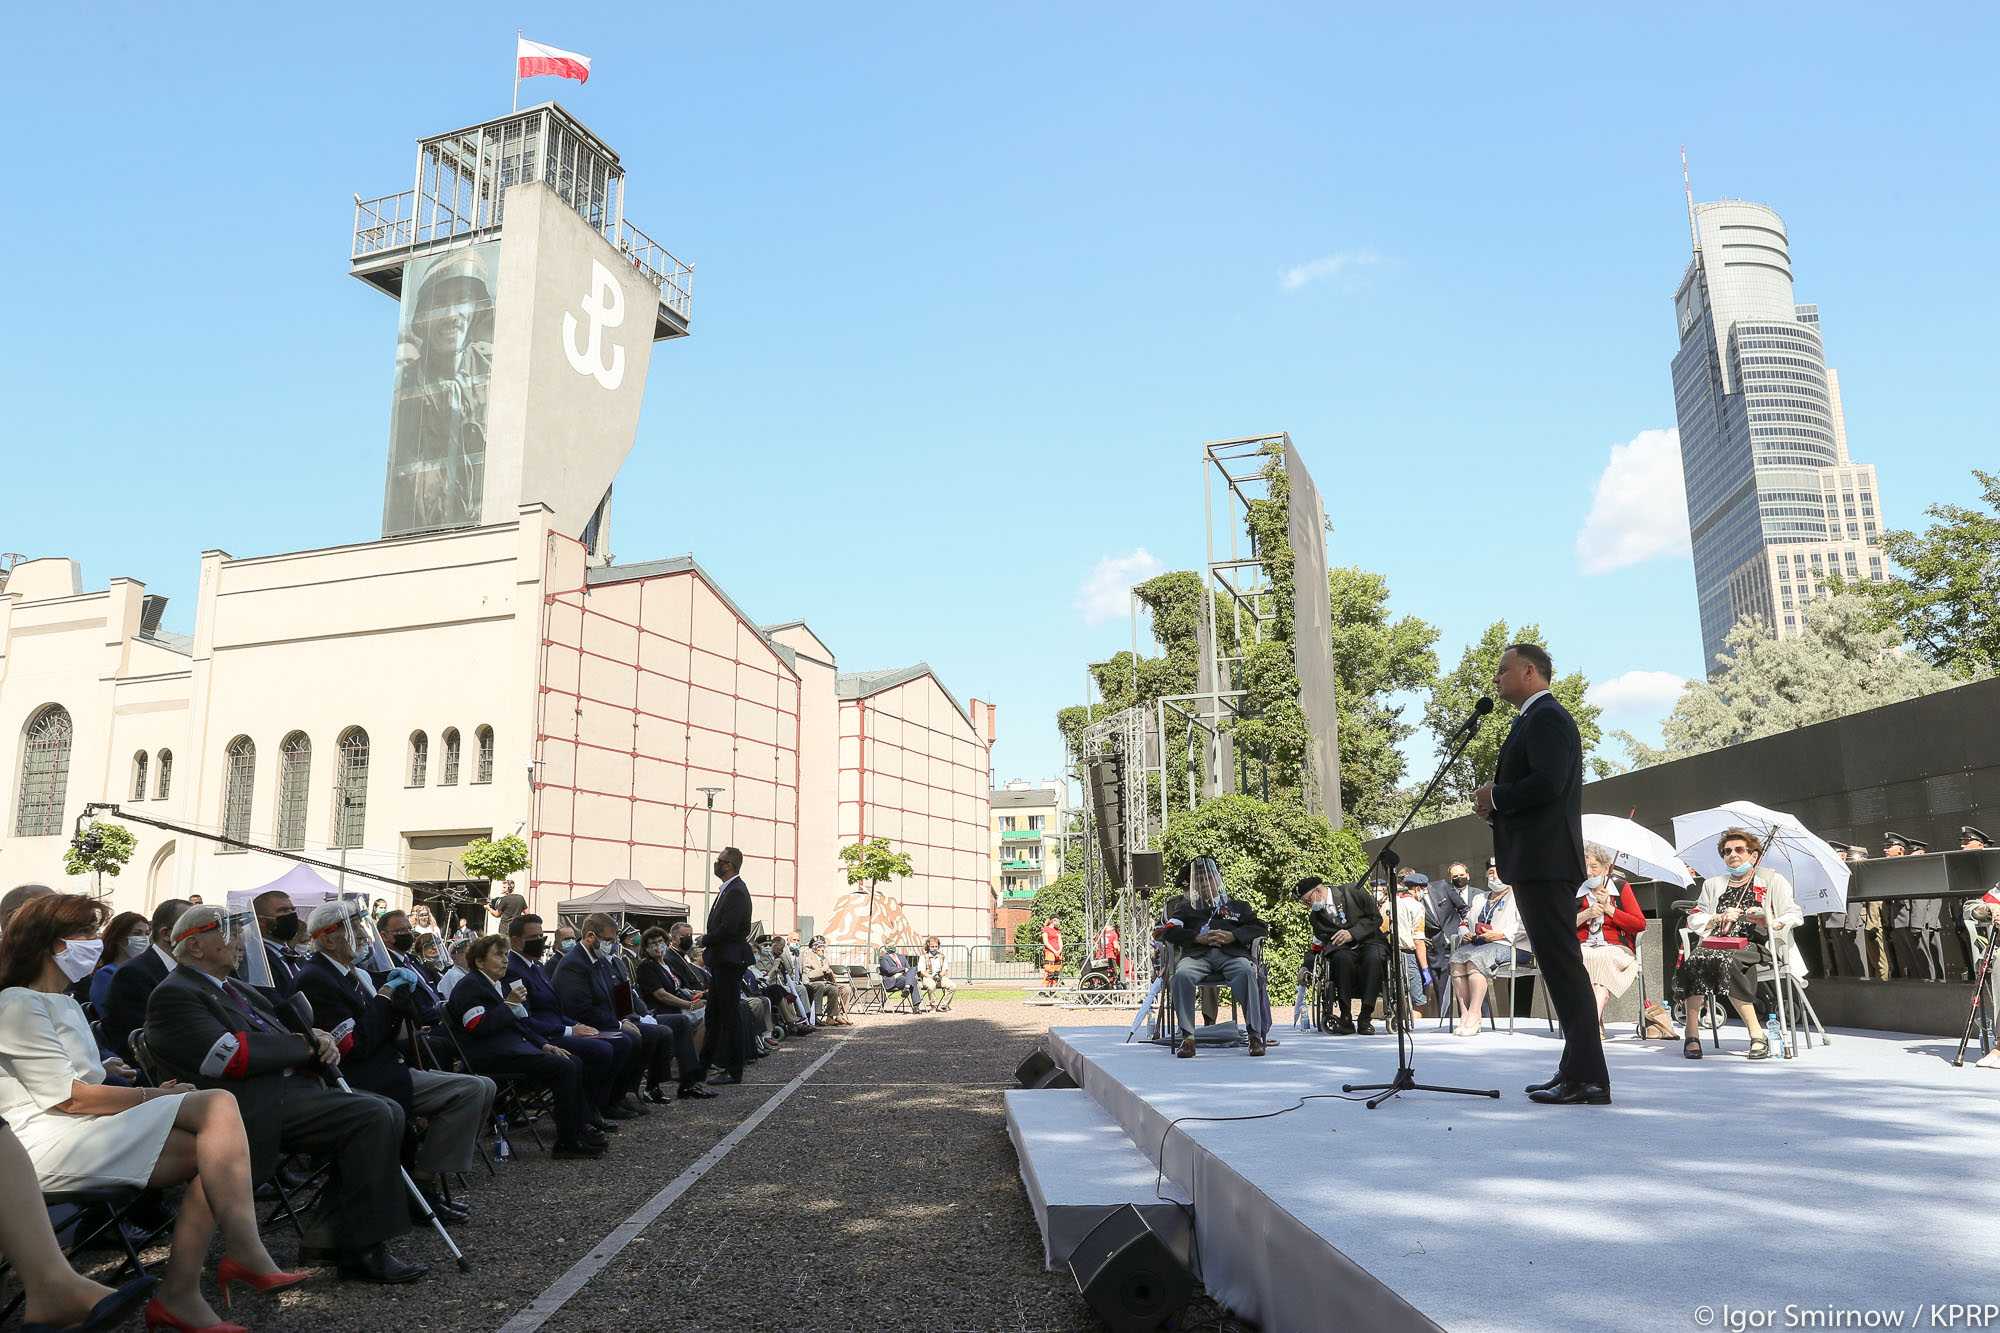 WI Daily News – Warsaw Uprising commemorations held in Warsaw